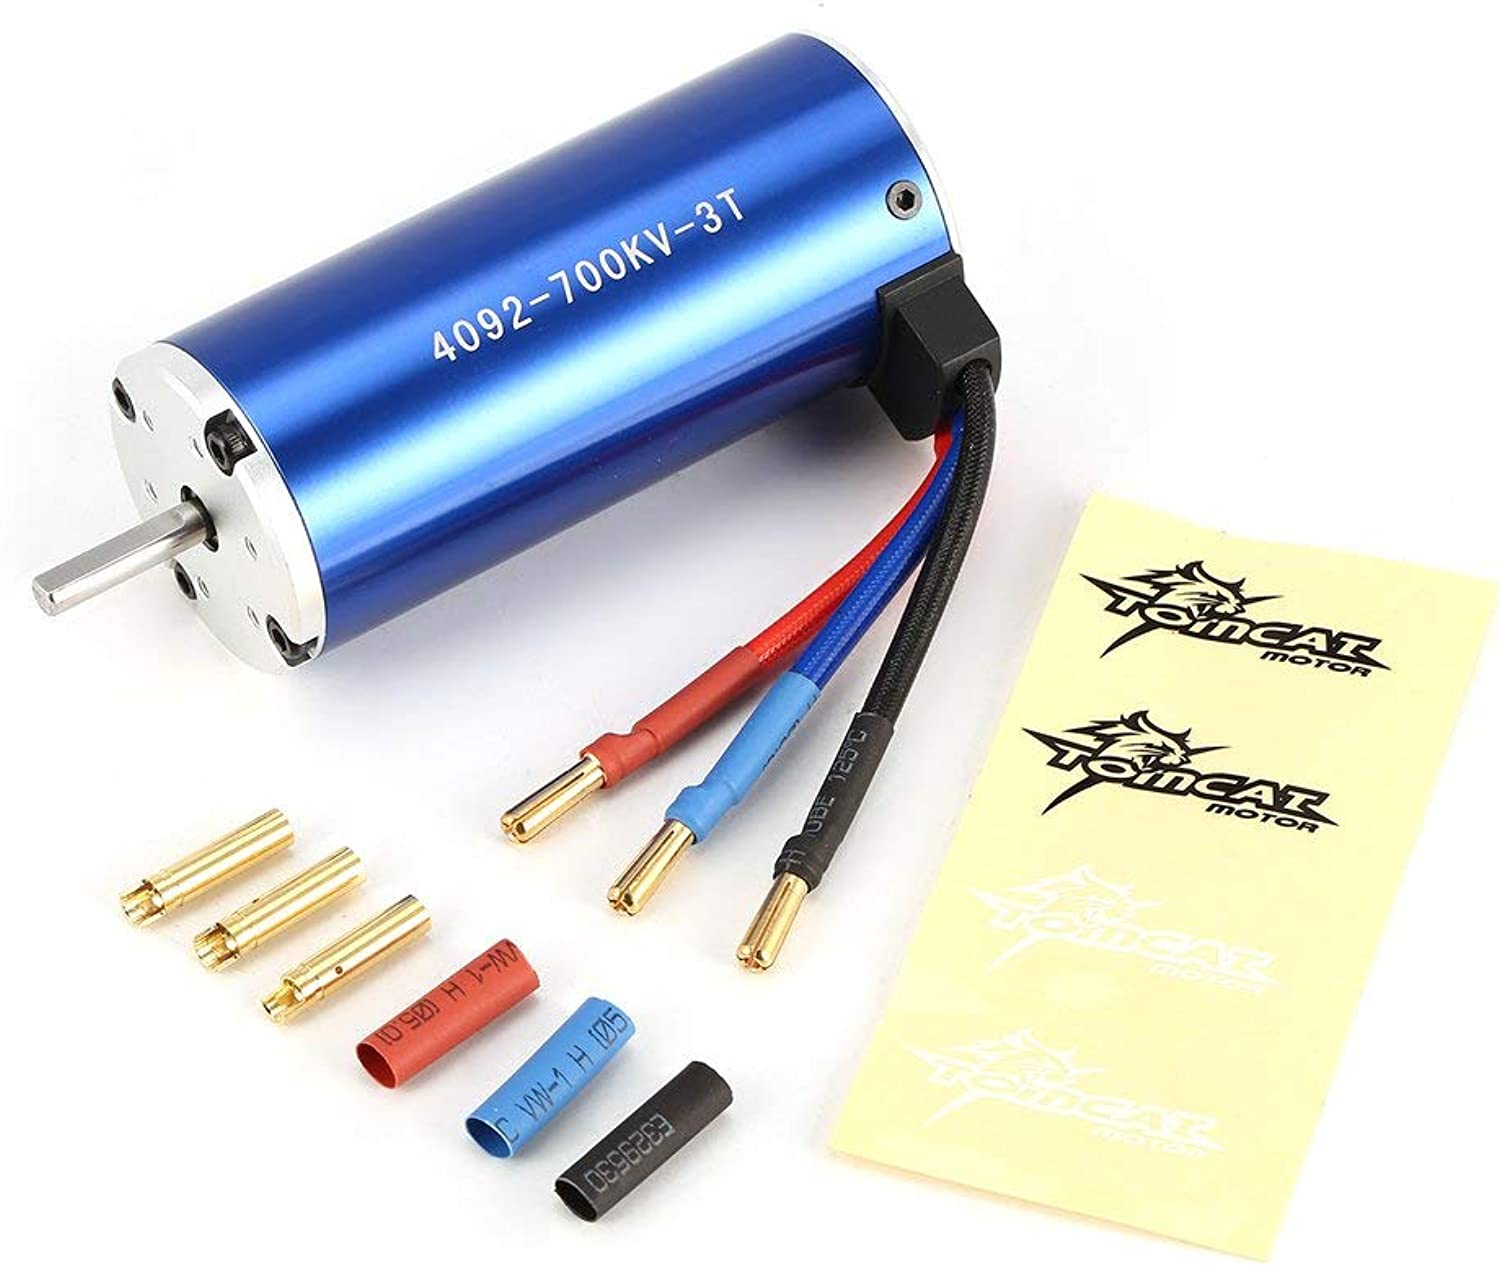 CHOULI TCCY 4092 3T KV700 5mm Brushless Motor for 1 8 Bigfoot RC Car Model Parts